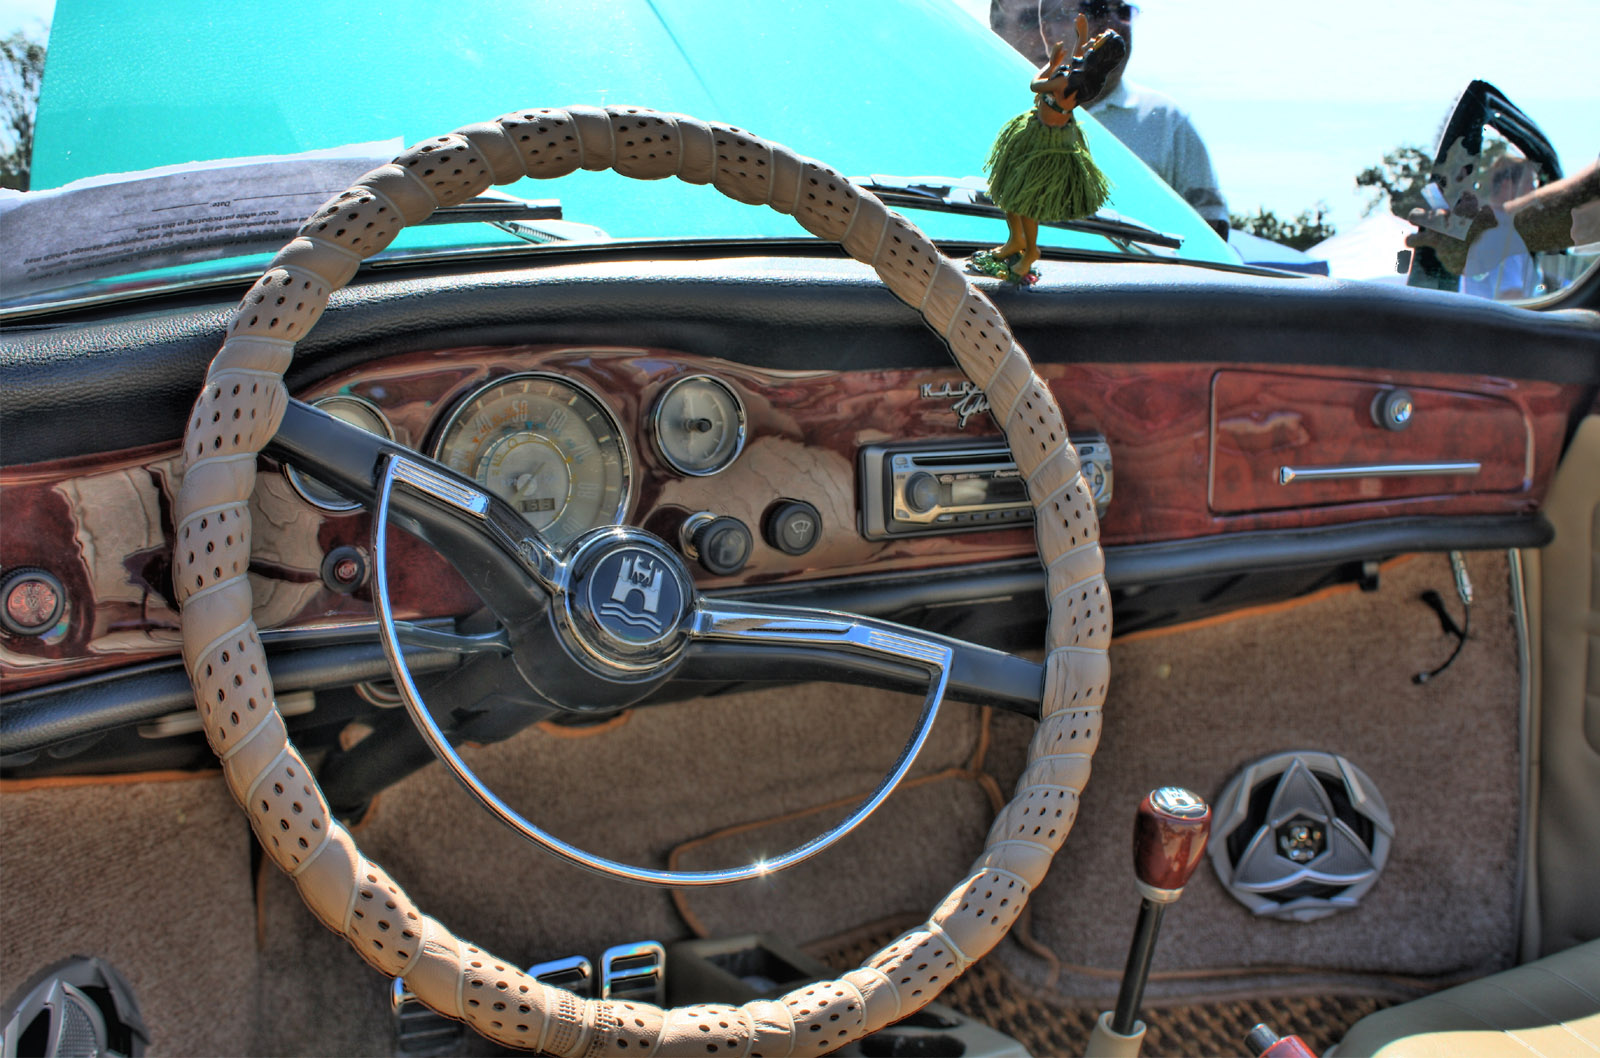 Ghia View Topic 1971 Wood Dash Face Replacement Wooden Panel Dashboard Image May Have Been Reduced In Size Click To Fullscreen